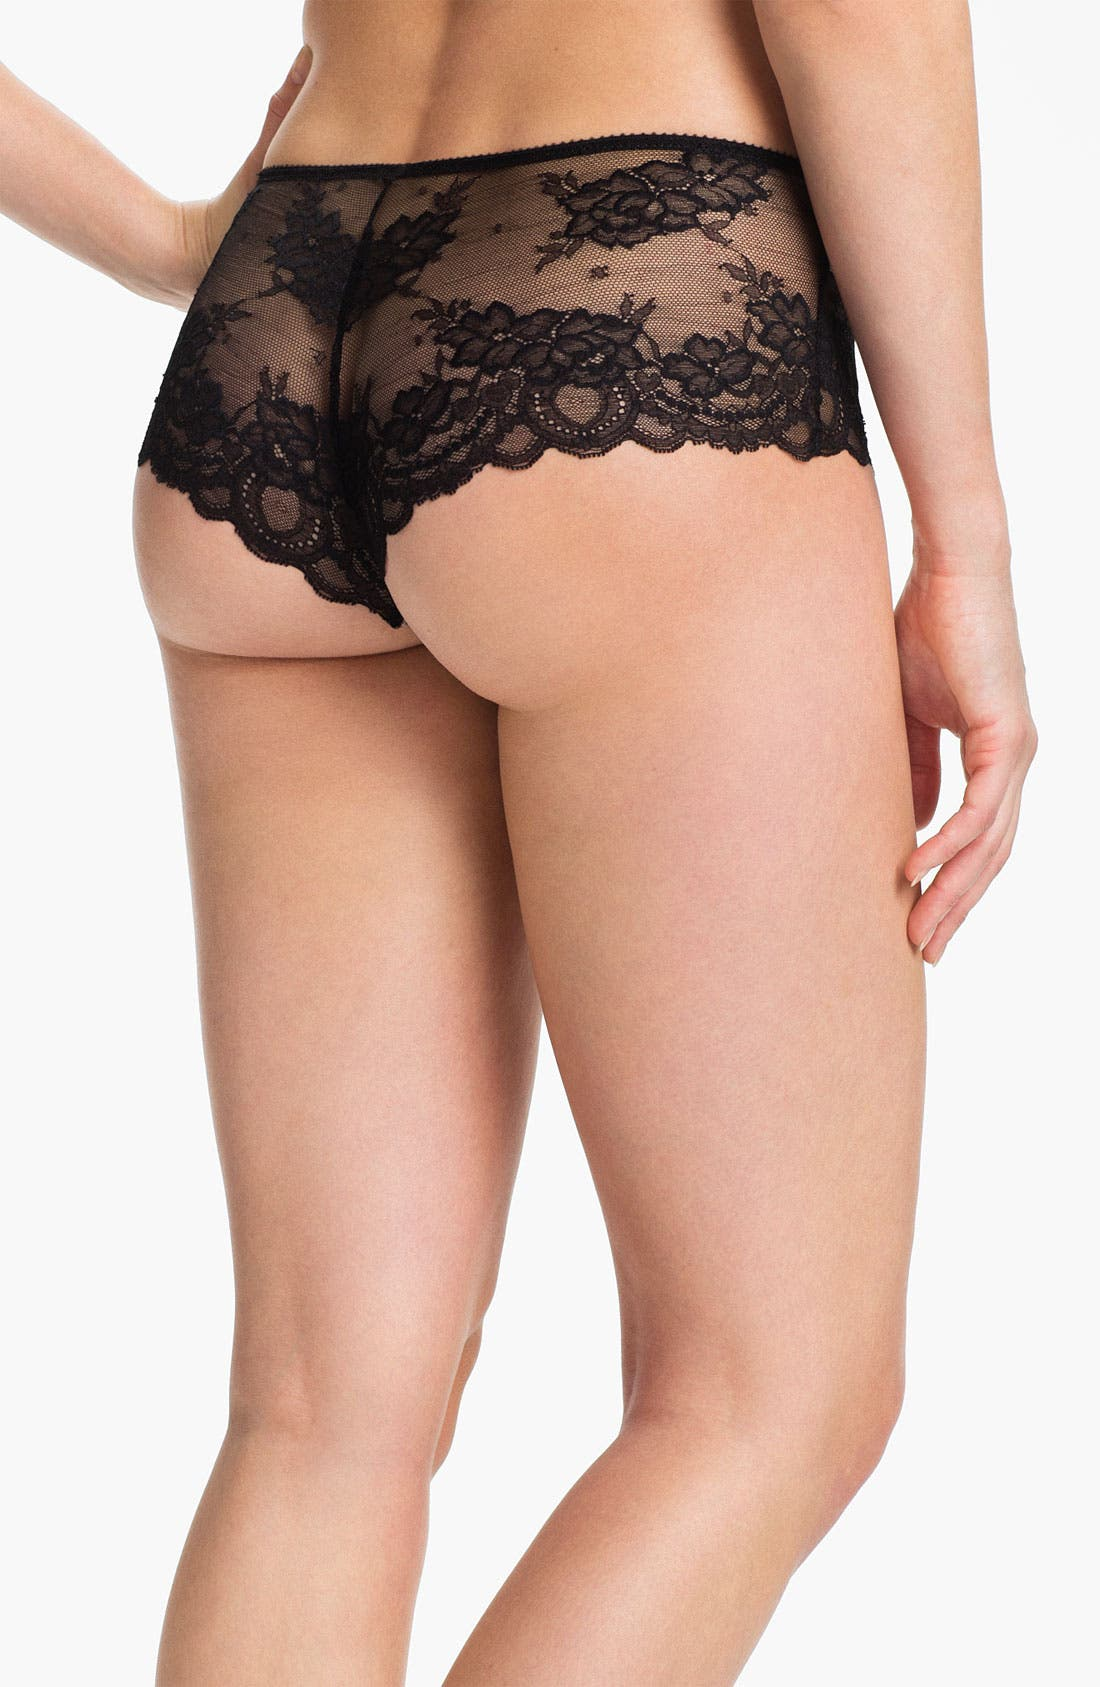 Alternate Image 2  - Chantelle Intimates 'Paris Paris' High Waist Briefs